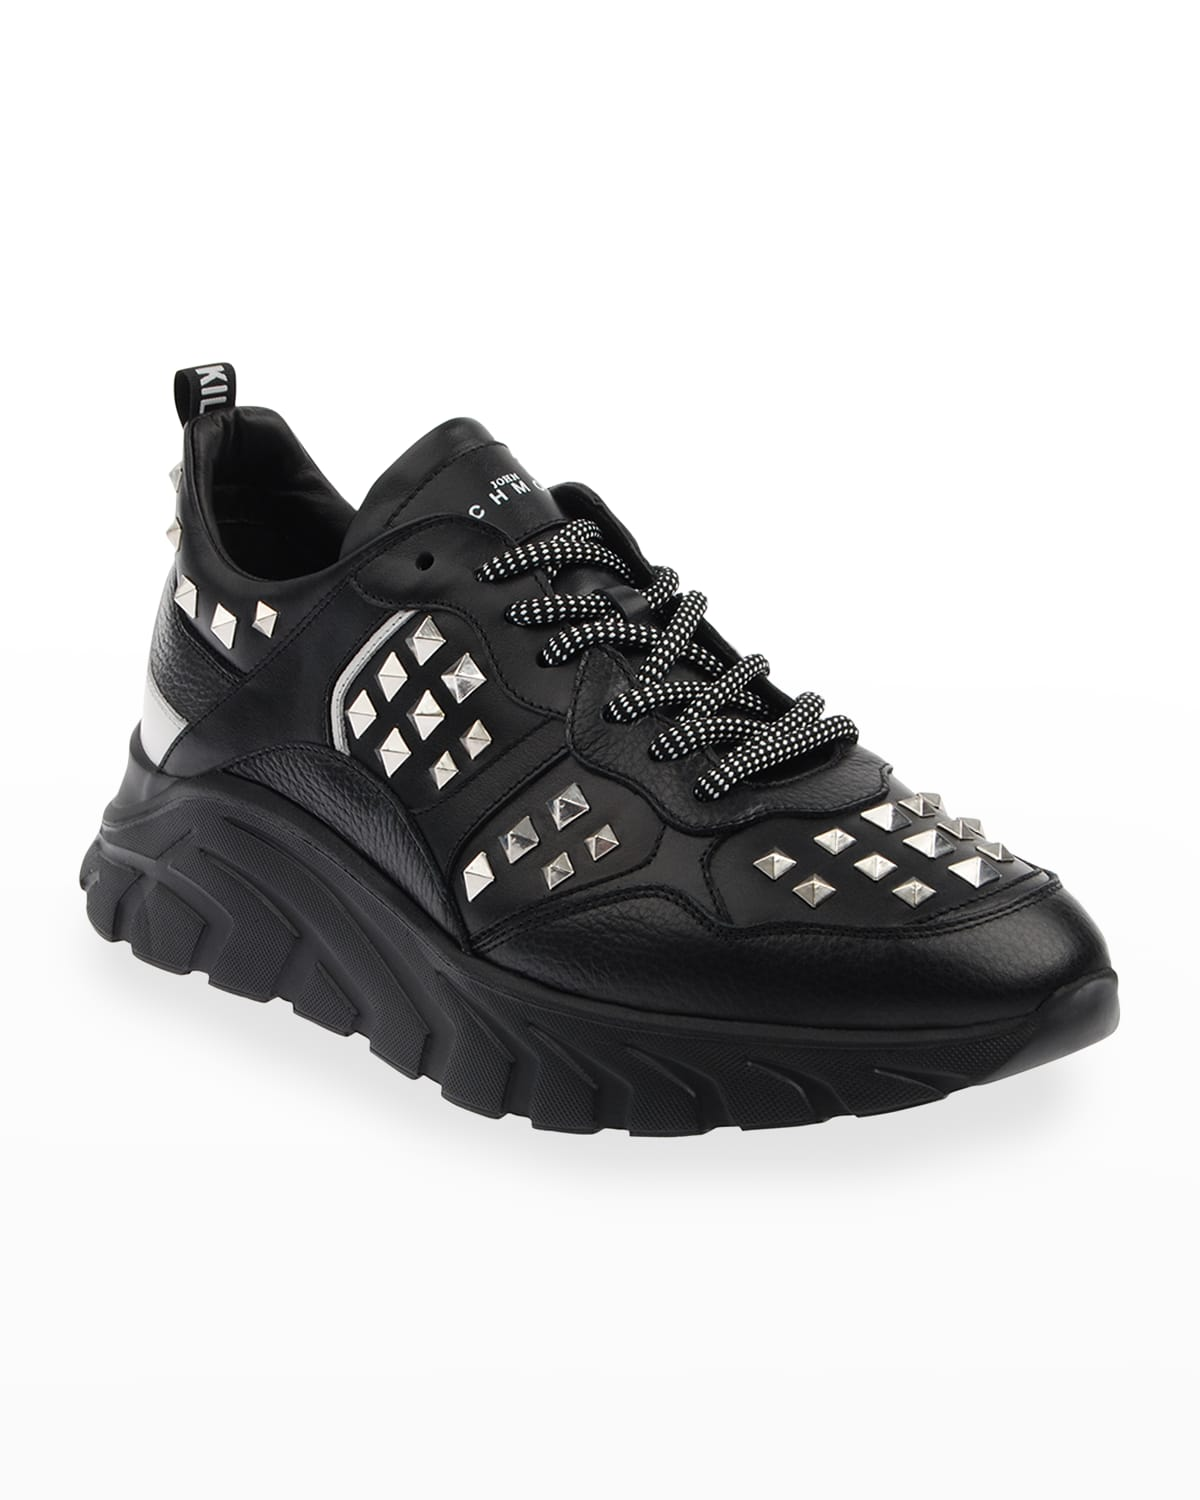 Men's Studded Leather Chunky Sneakers